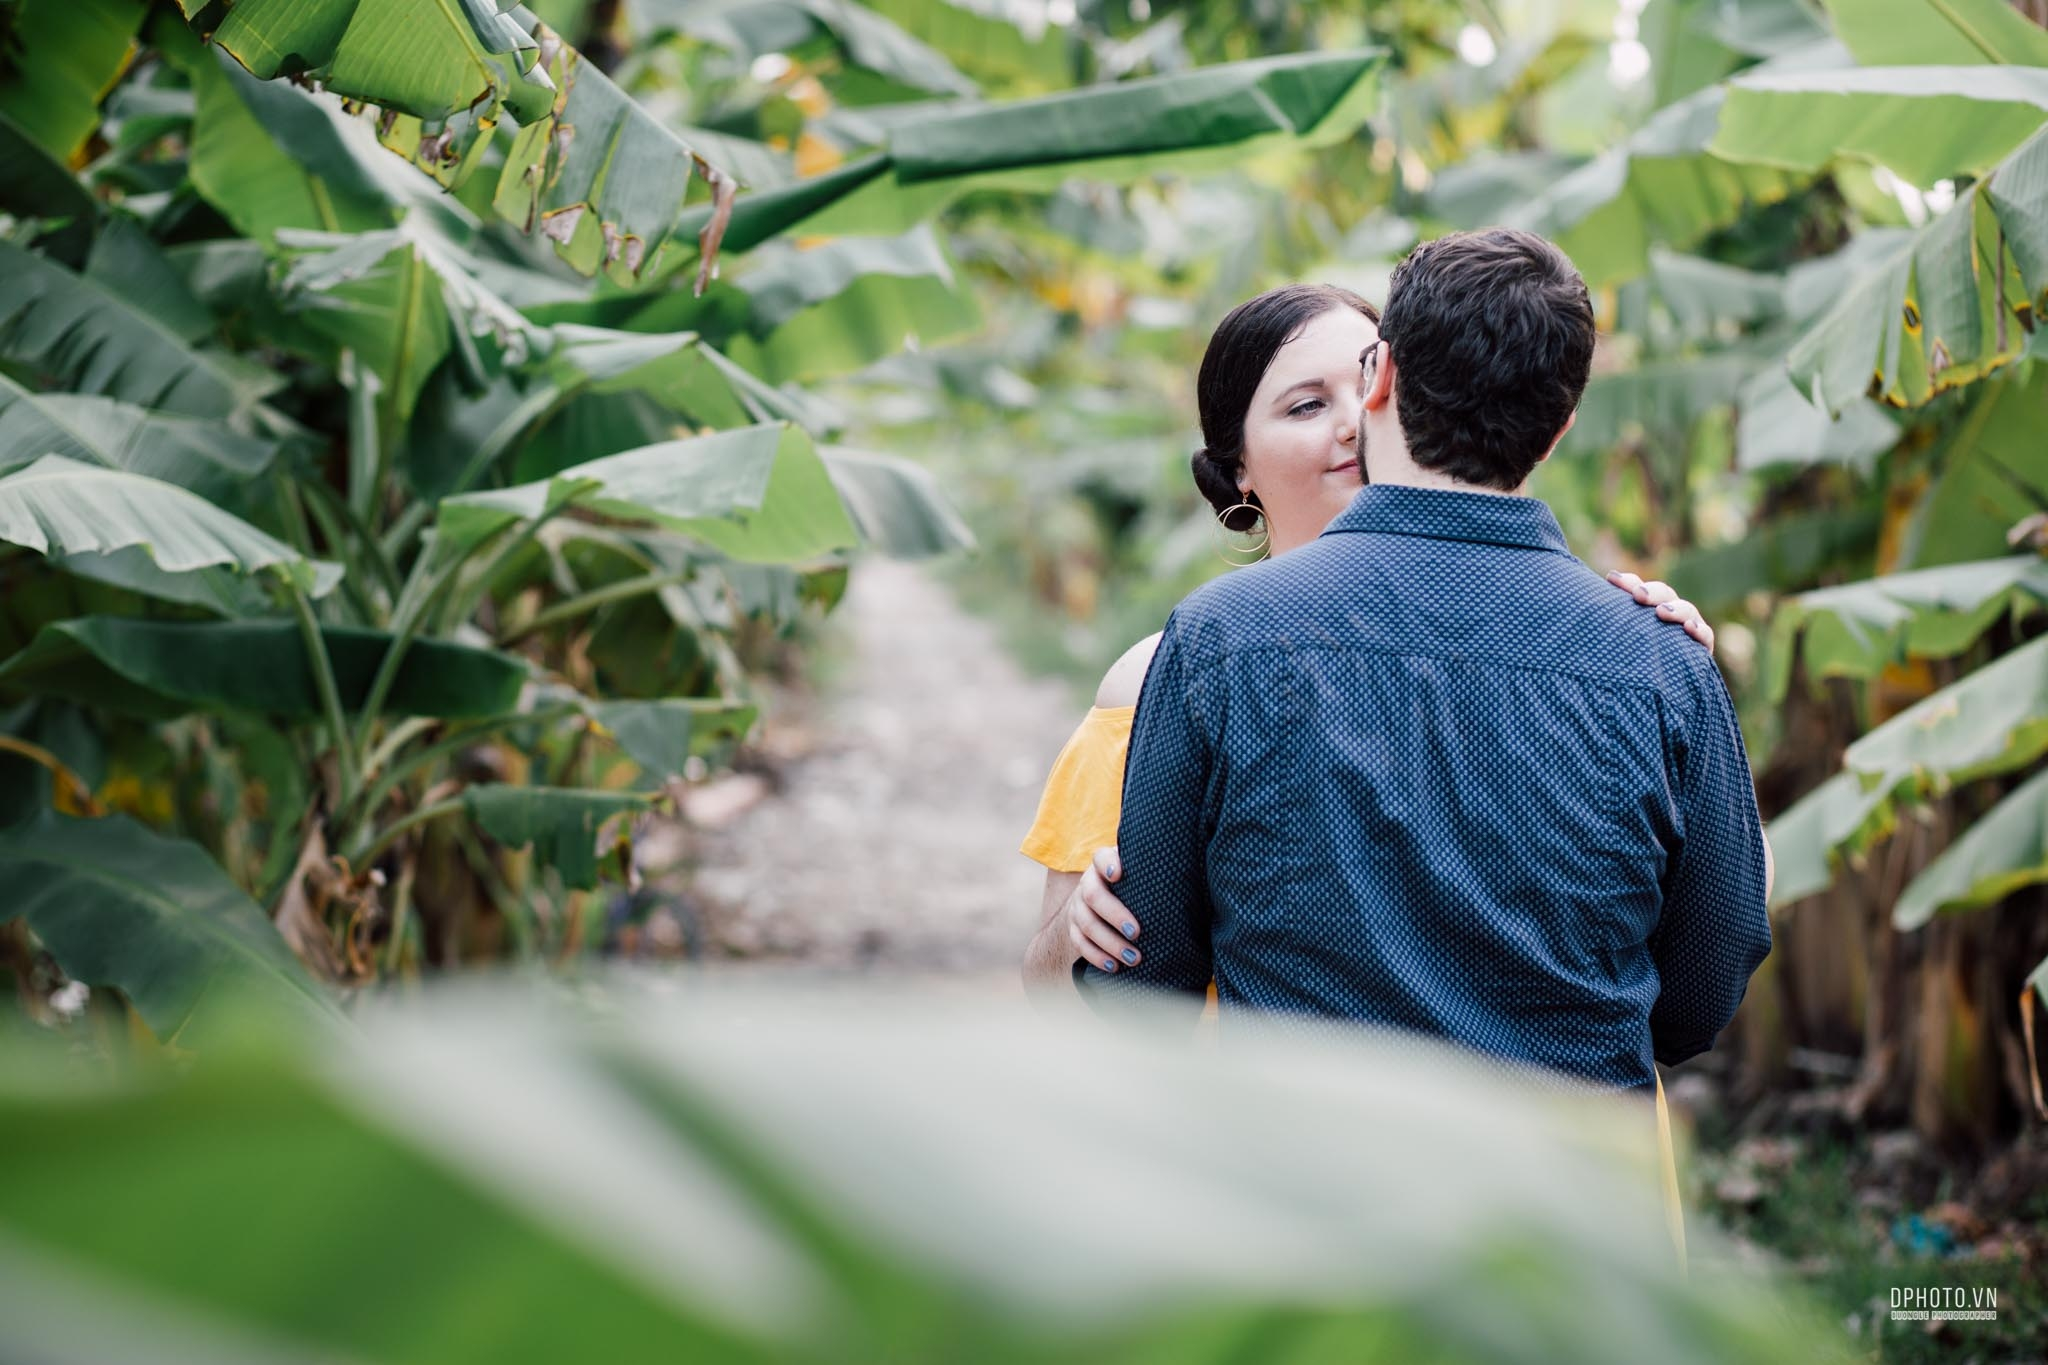 engagement_photo_in_sai_gon_ho_chi_minh_viet_nam69